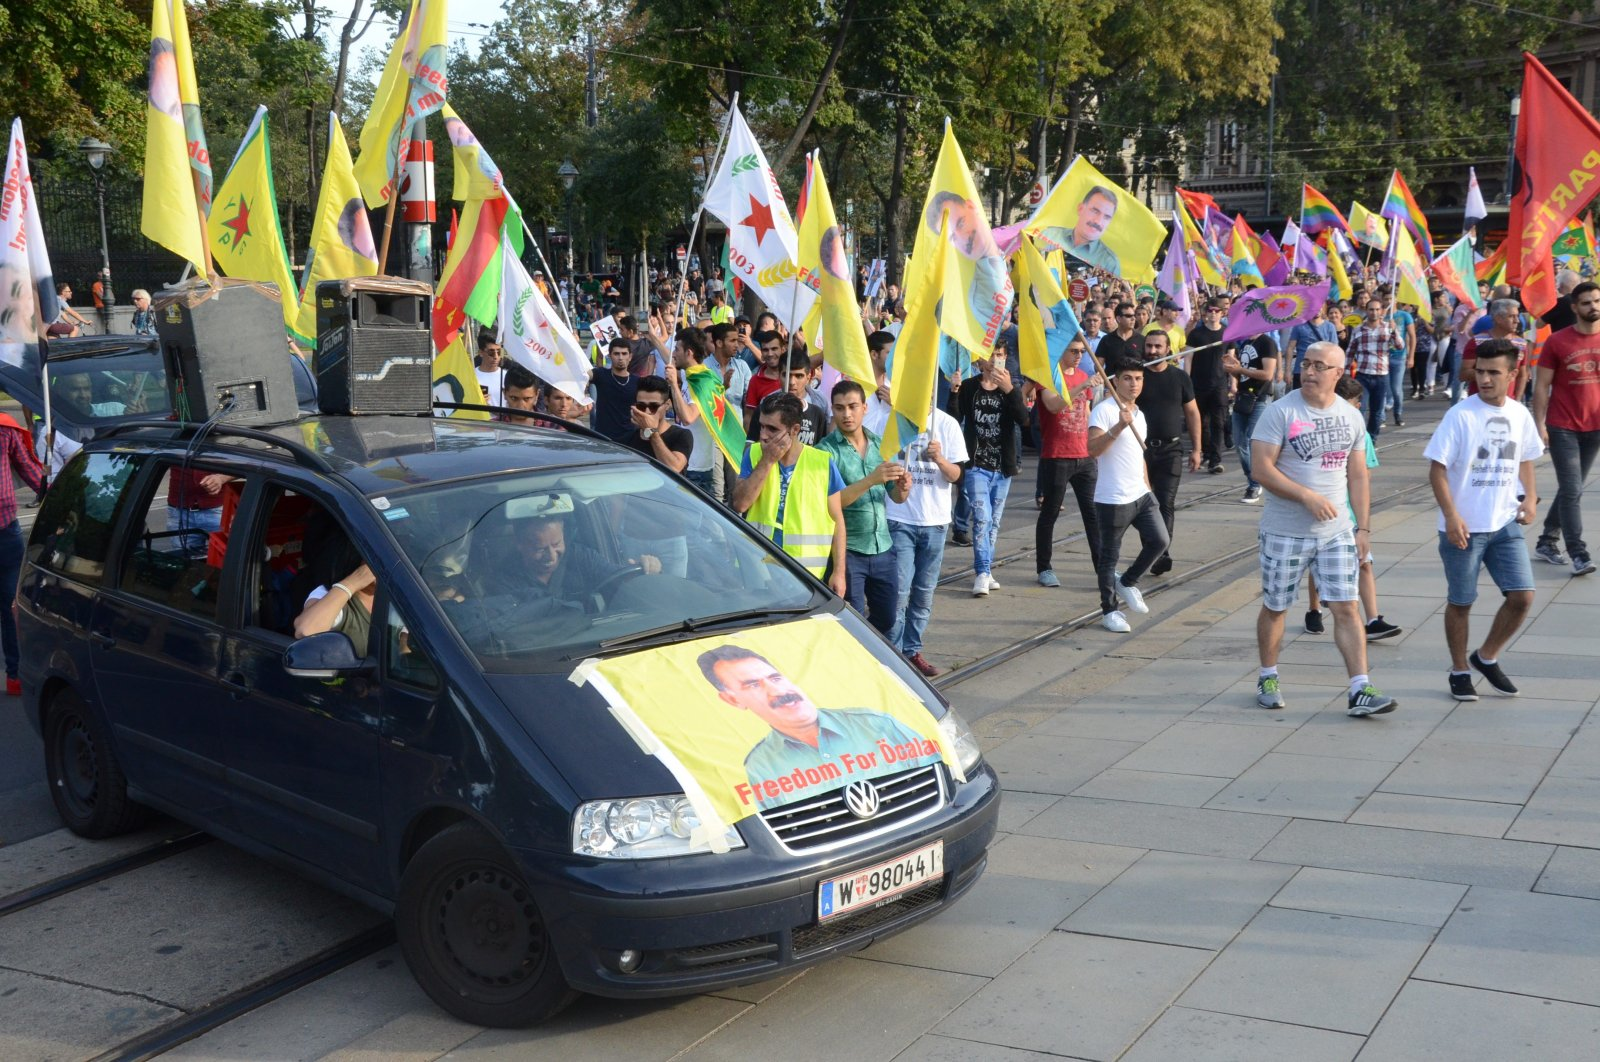 Pro-PKK protesters wave flags of the terrorist organization and a picture of imprisoned terrorist leader Abdullah Öcalan is seen on a vehicle in the Austrian capital Vienna, June 28, 2020. (AA Photo)